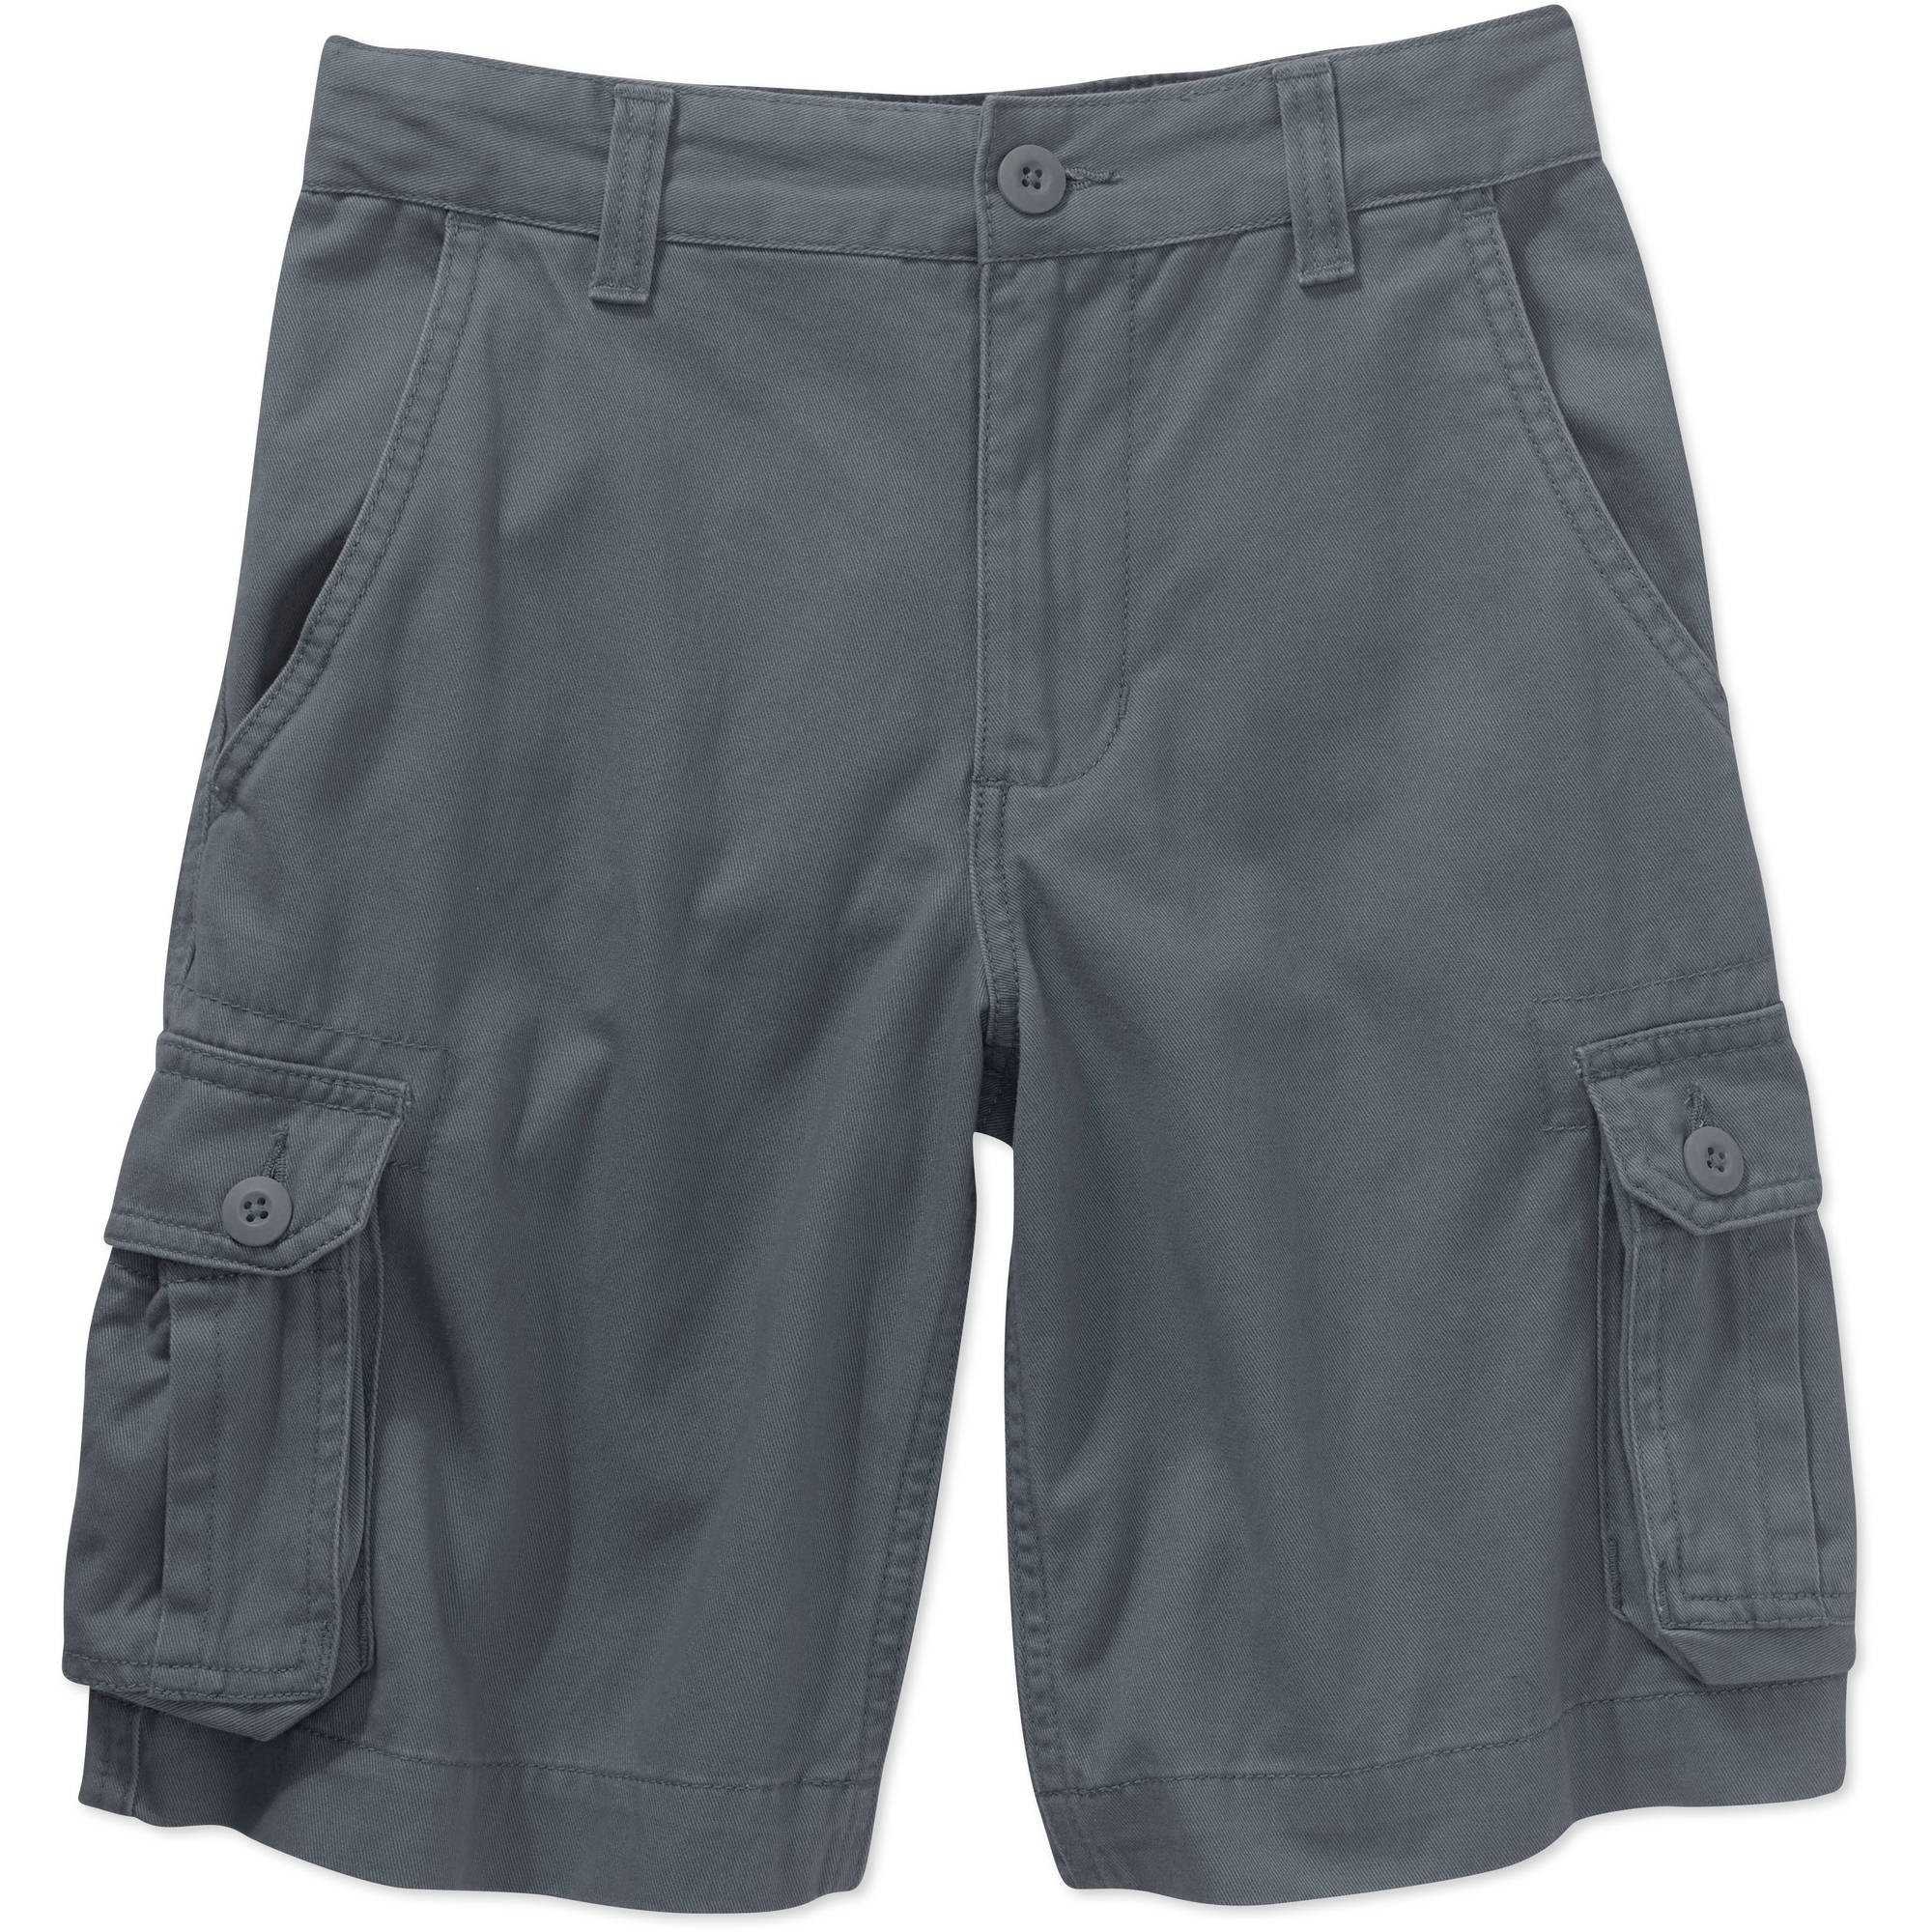 Khaki Shorts Walmart - The Else